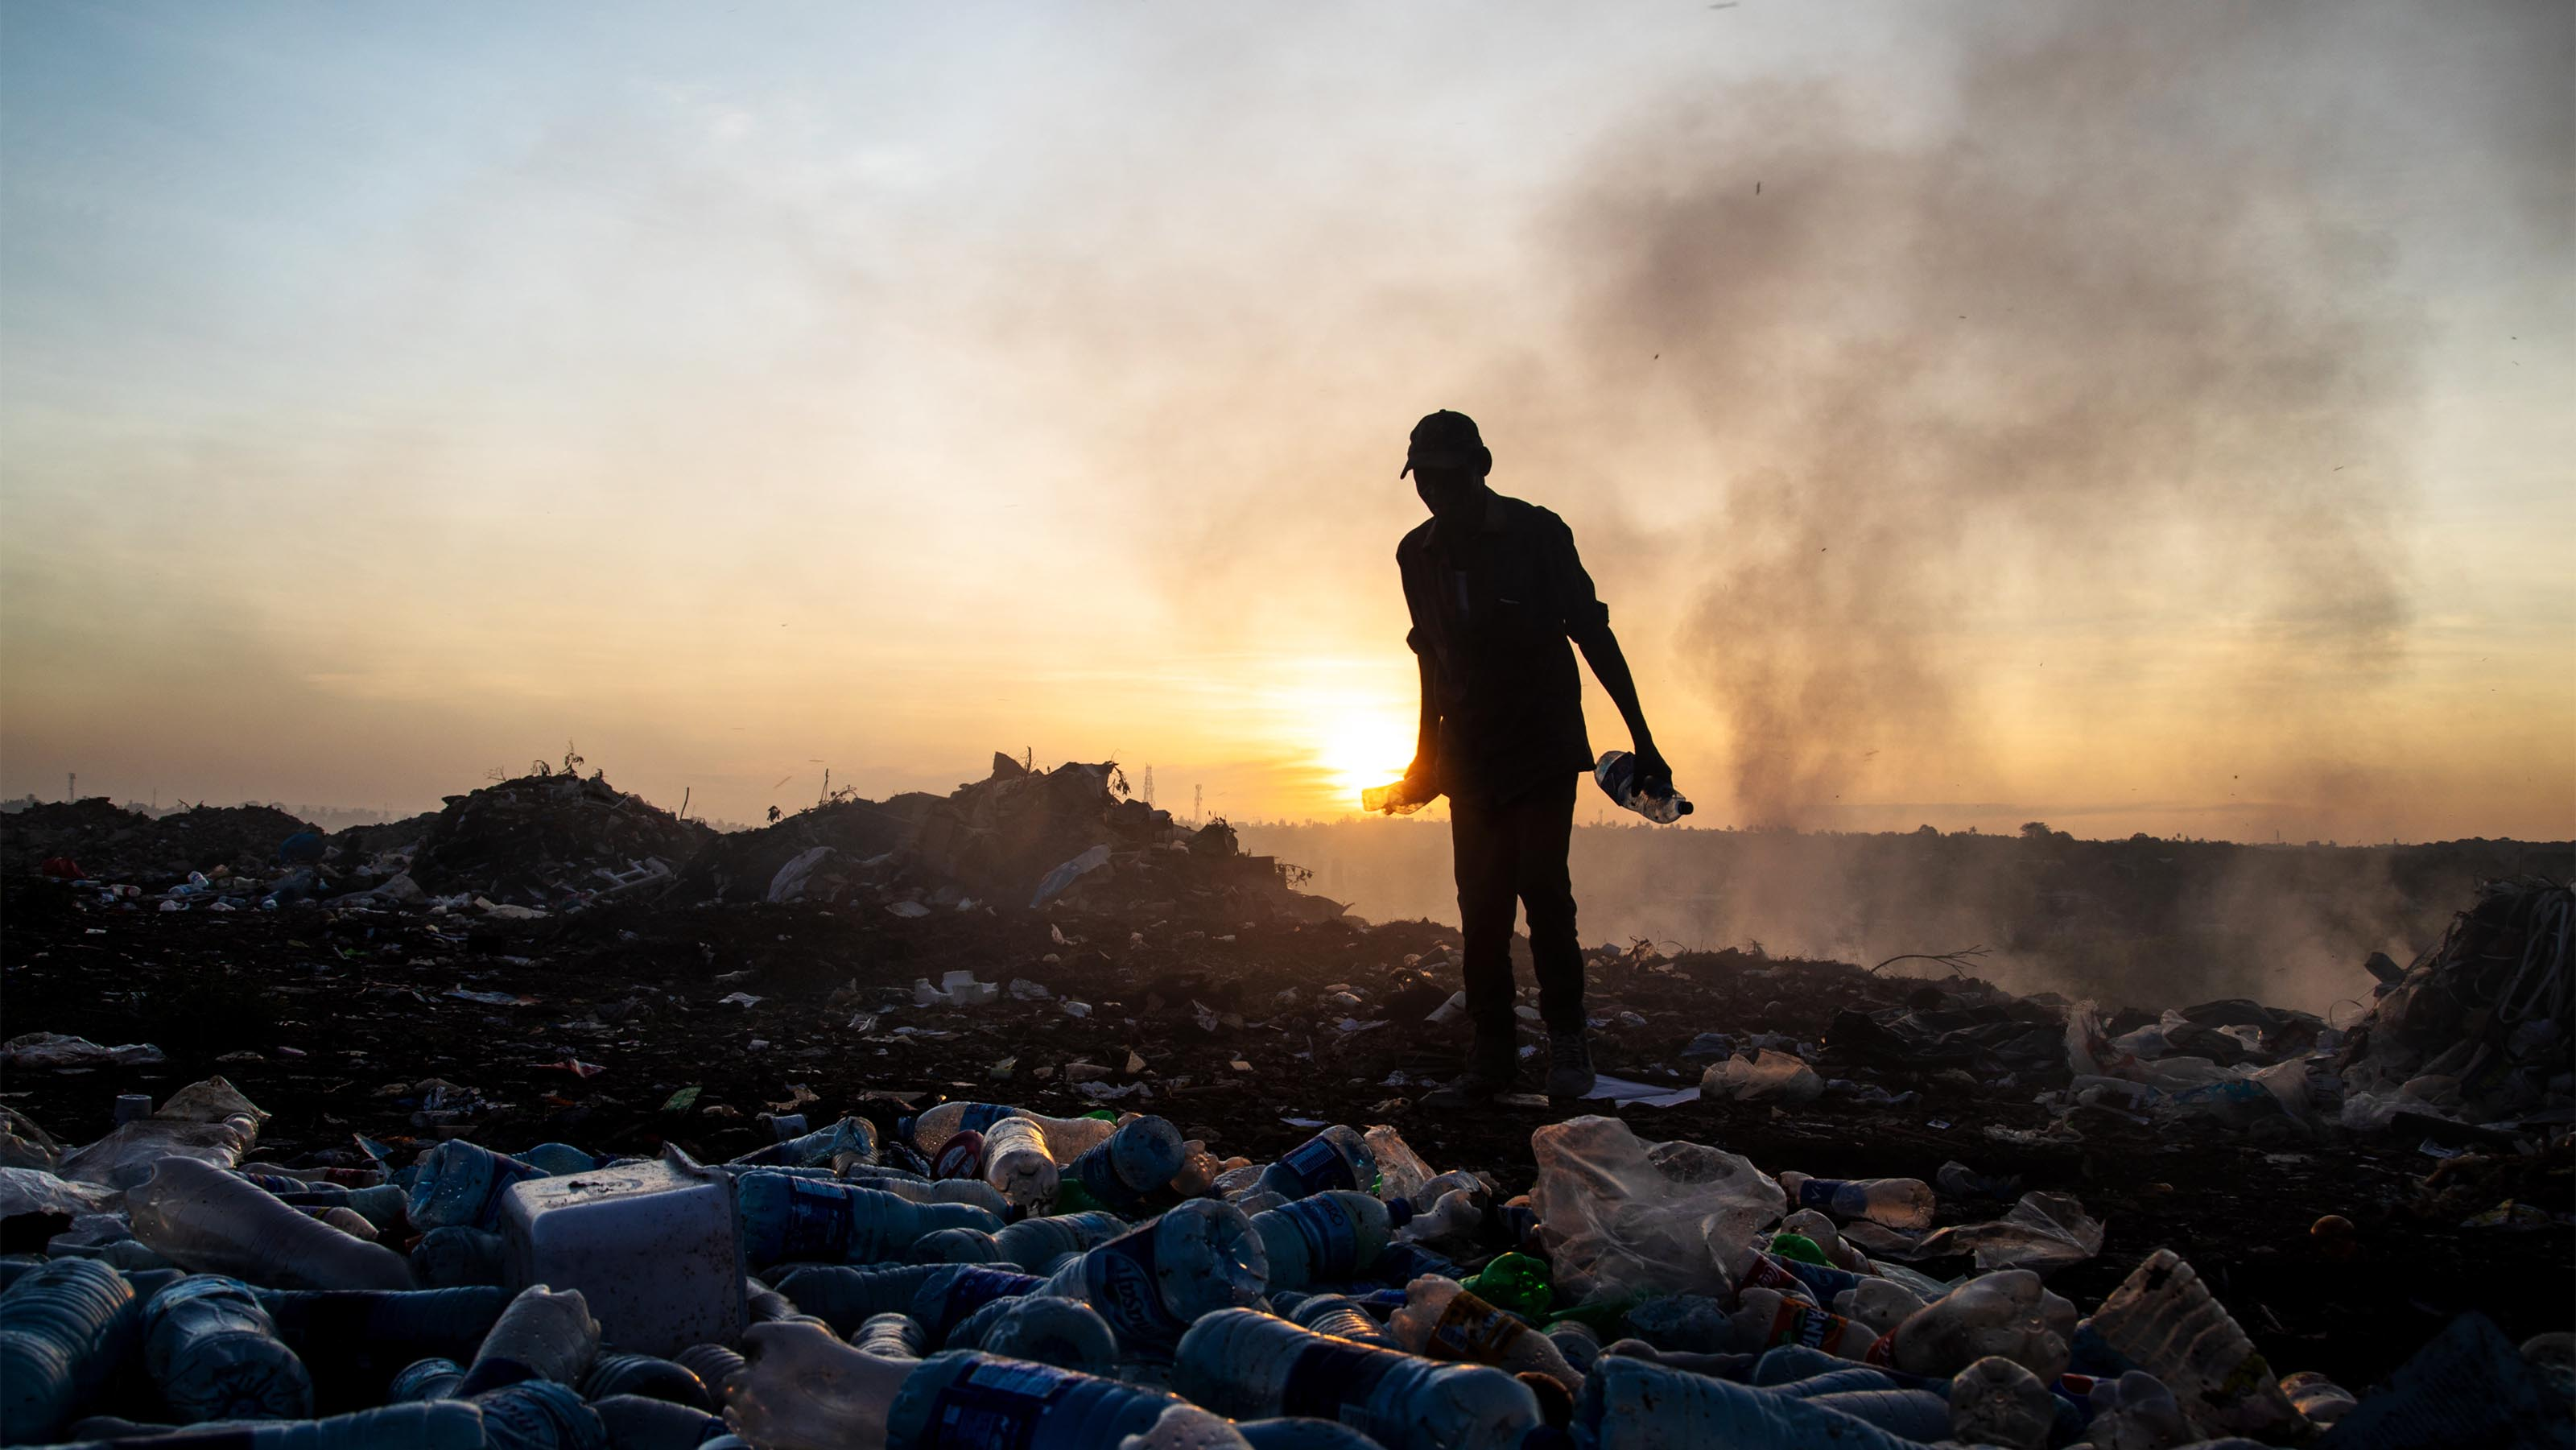 A waste picker collecting plastic bottles at a dump in Tanzania.